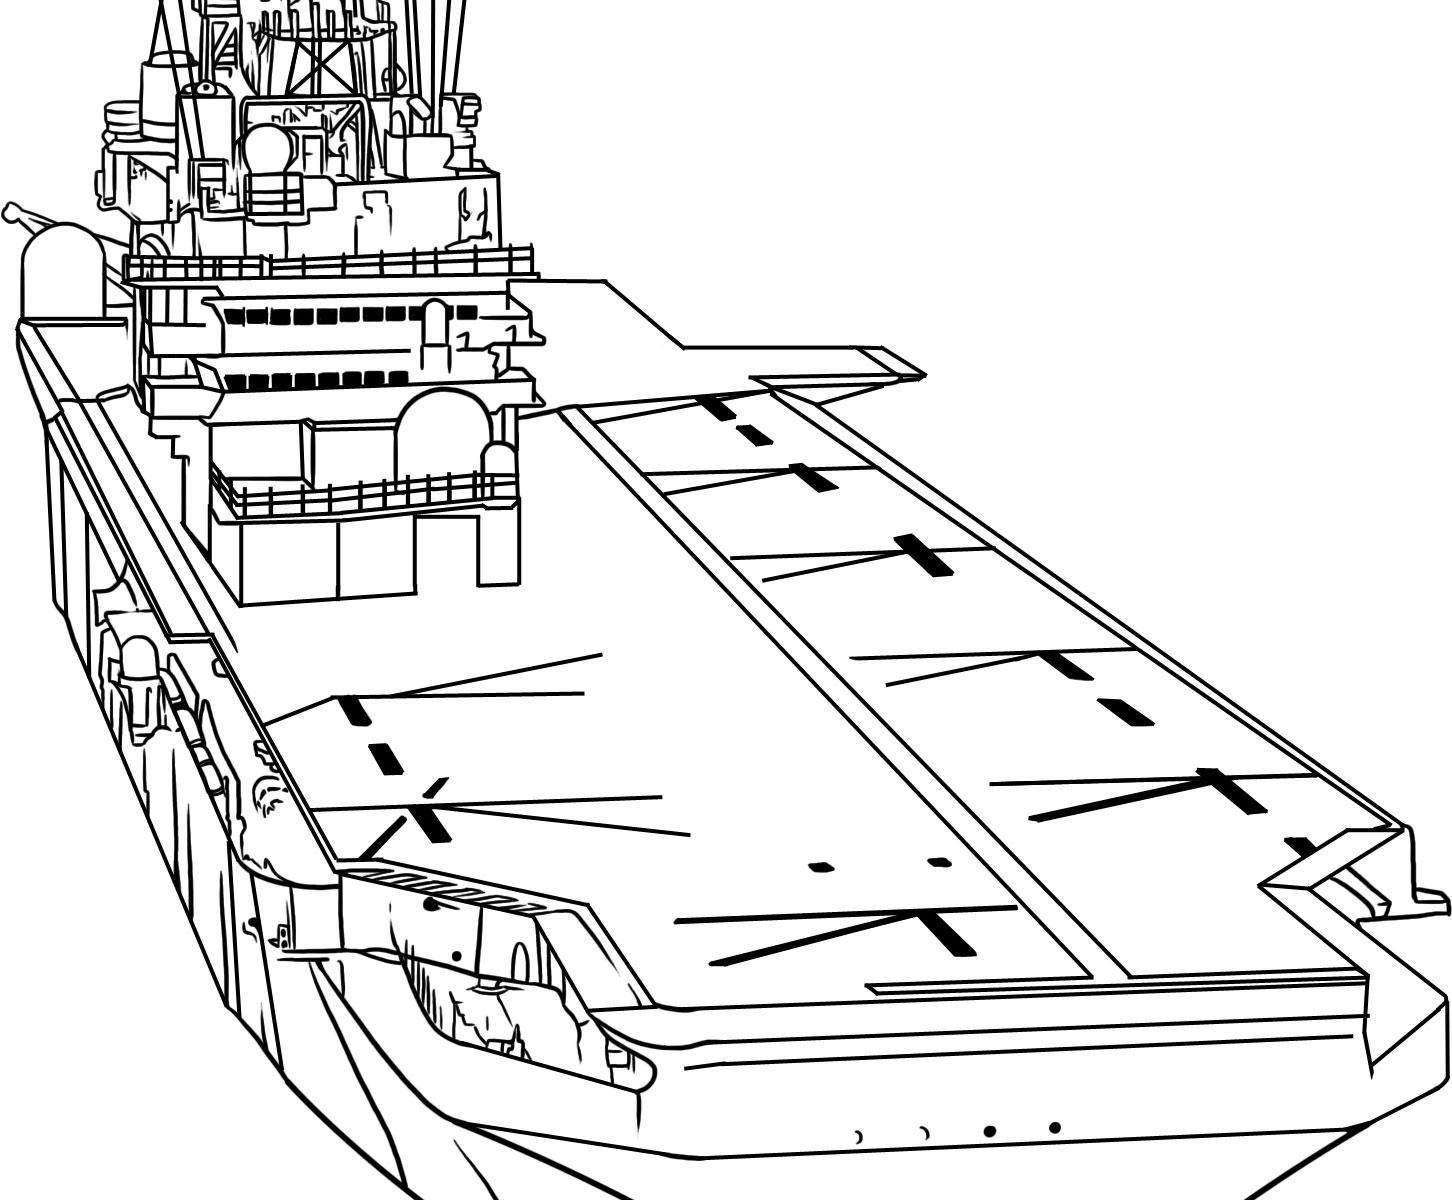 Naval Ship Drawing At Getdrawings